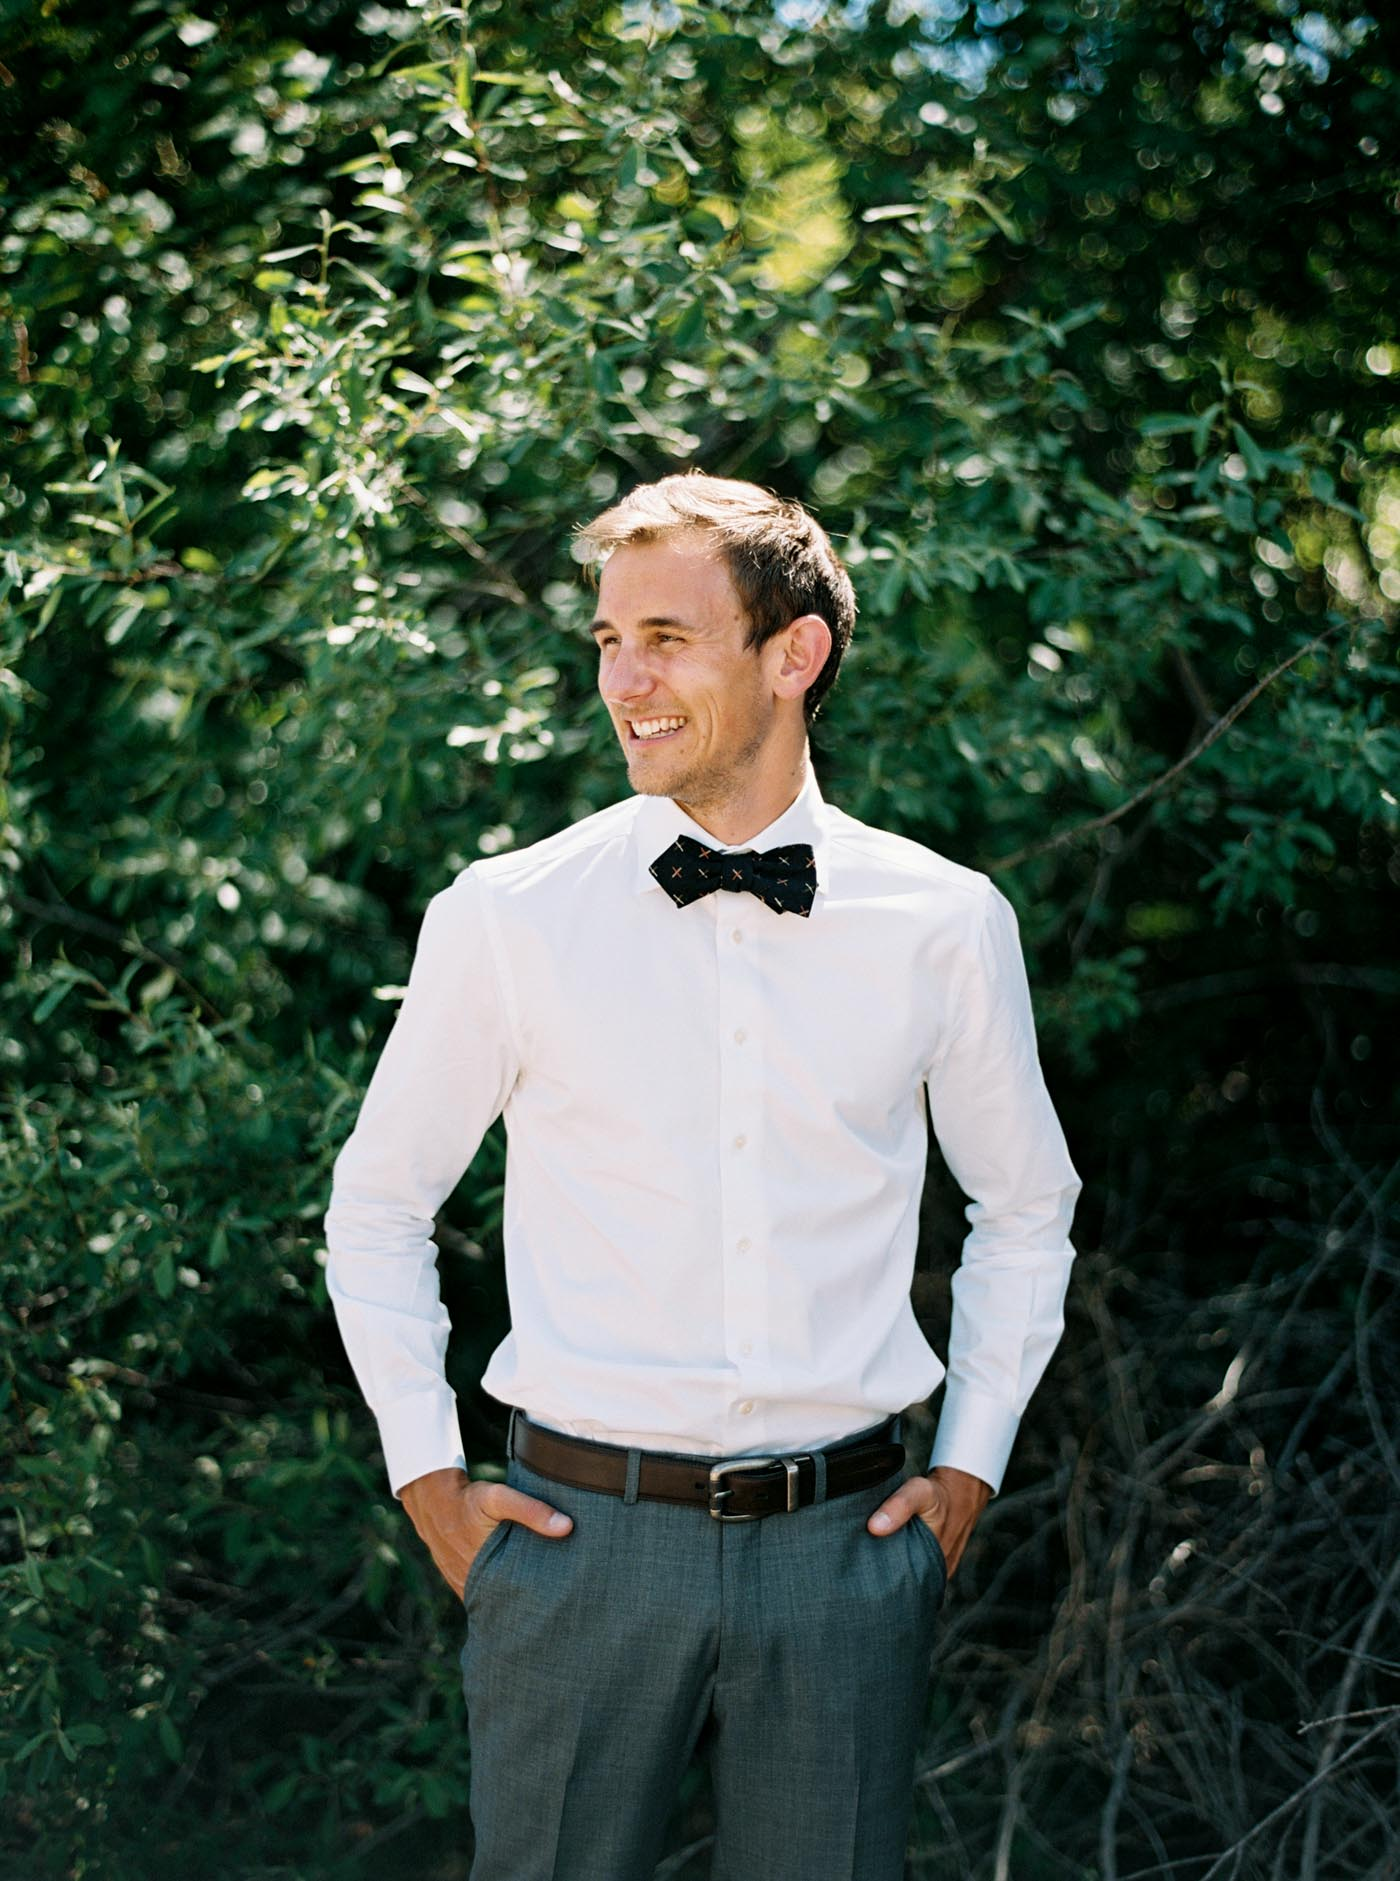 Classic groom portrait on film by top Leavenworth Wedding Photographer Anna Peters